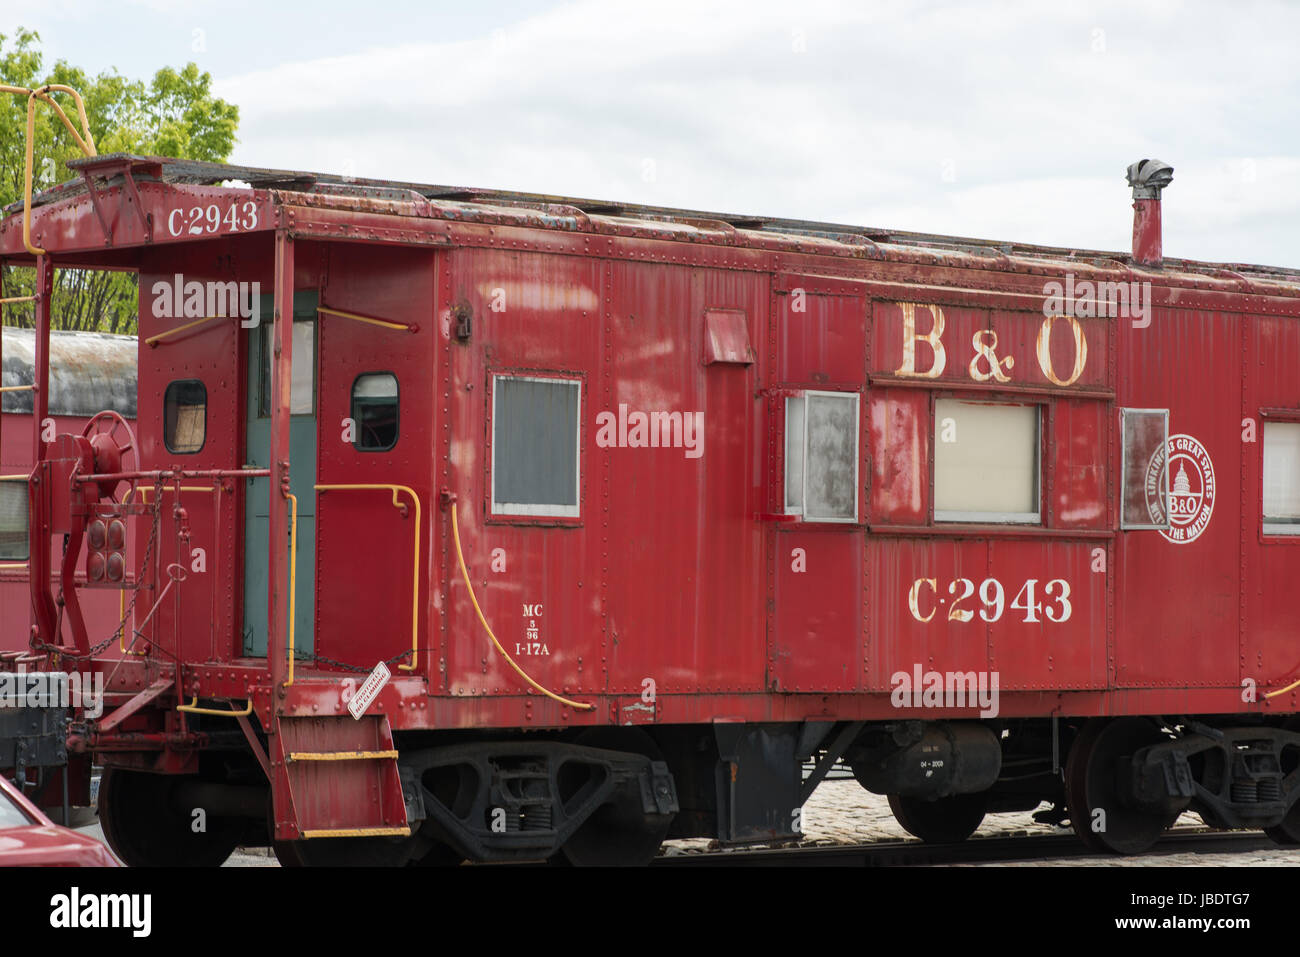 BALITMORE, MD - APRIL 15: B O Number C-2943 Caboose Baltimore Ohio Railroad on April 15, 2017 - Stock Image